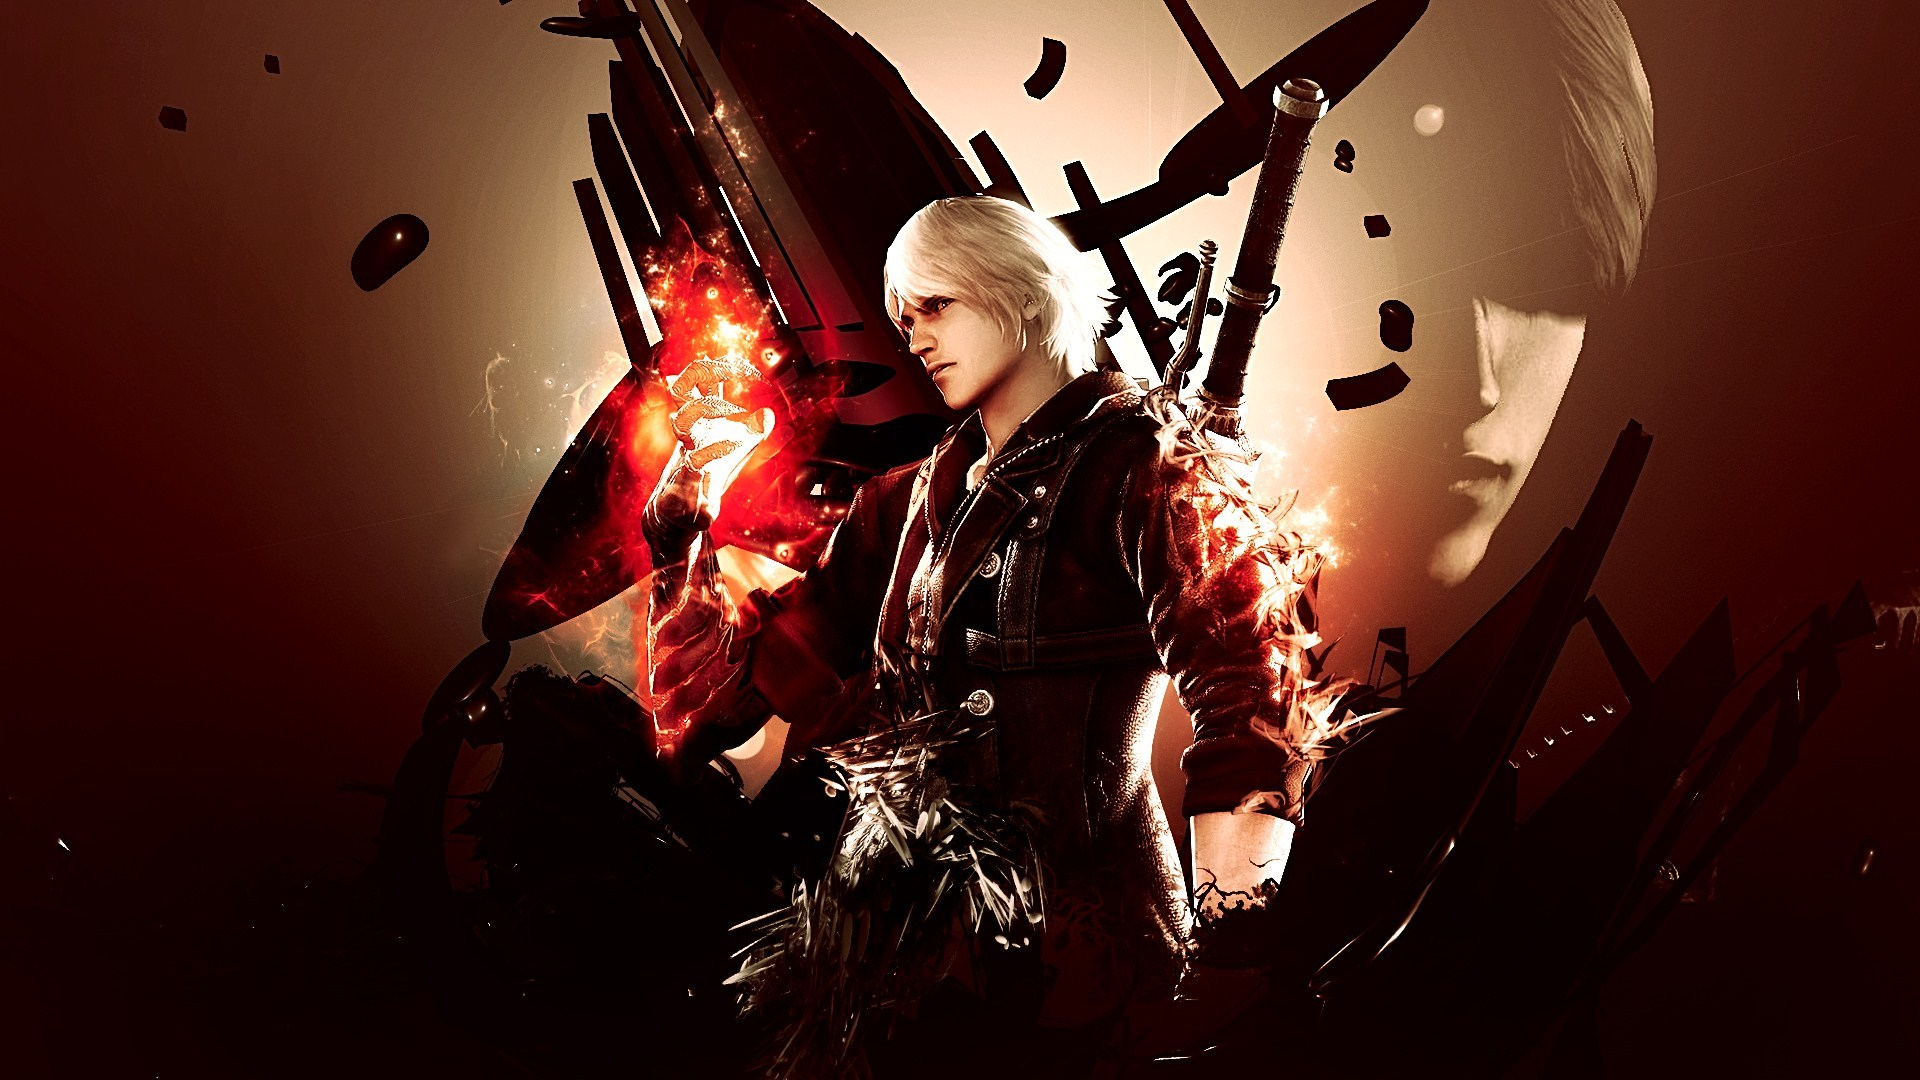 Devil May Cry 5 Wallpaper Fondos De Pantalla Devil May Cry